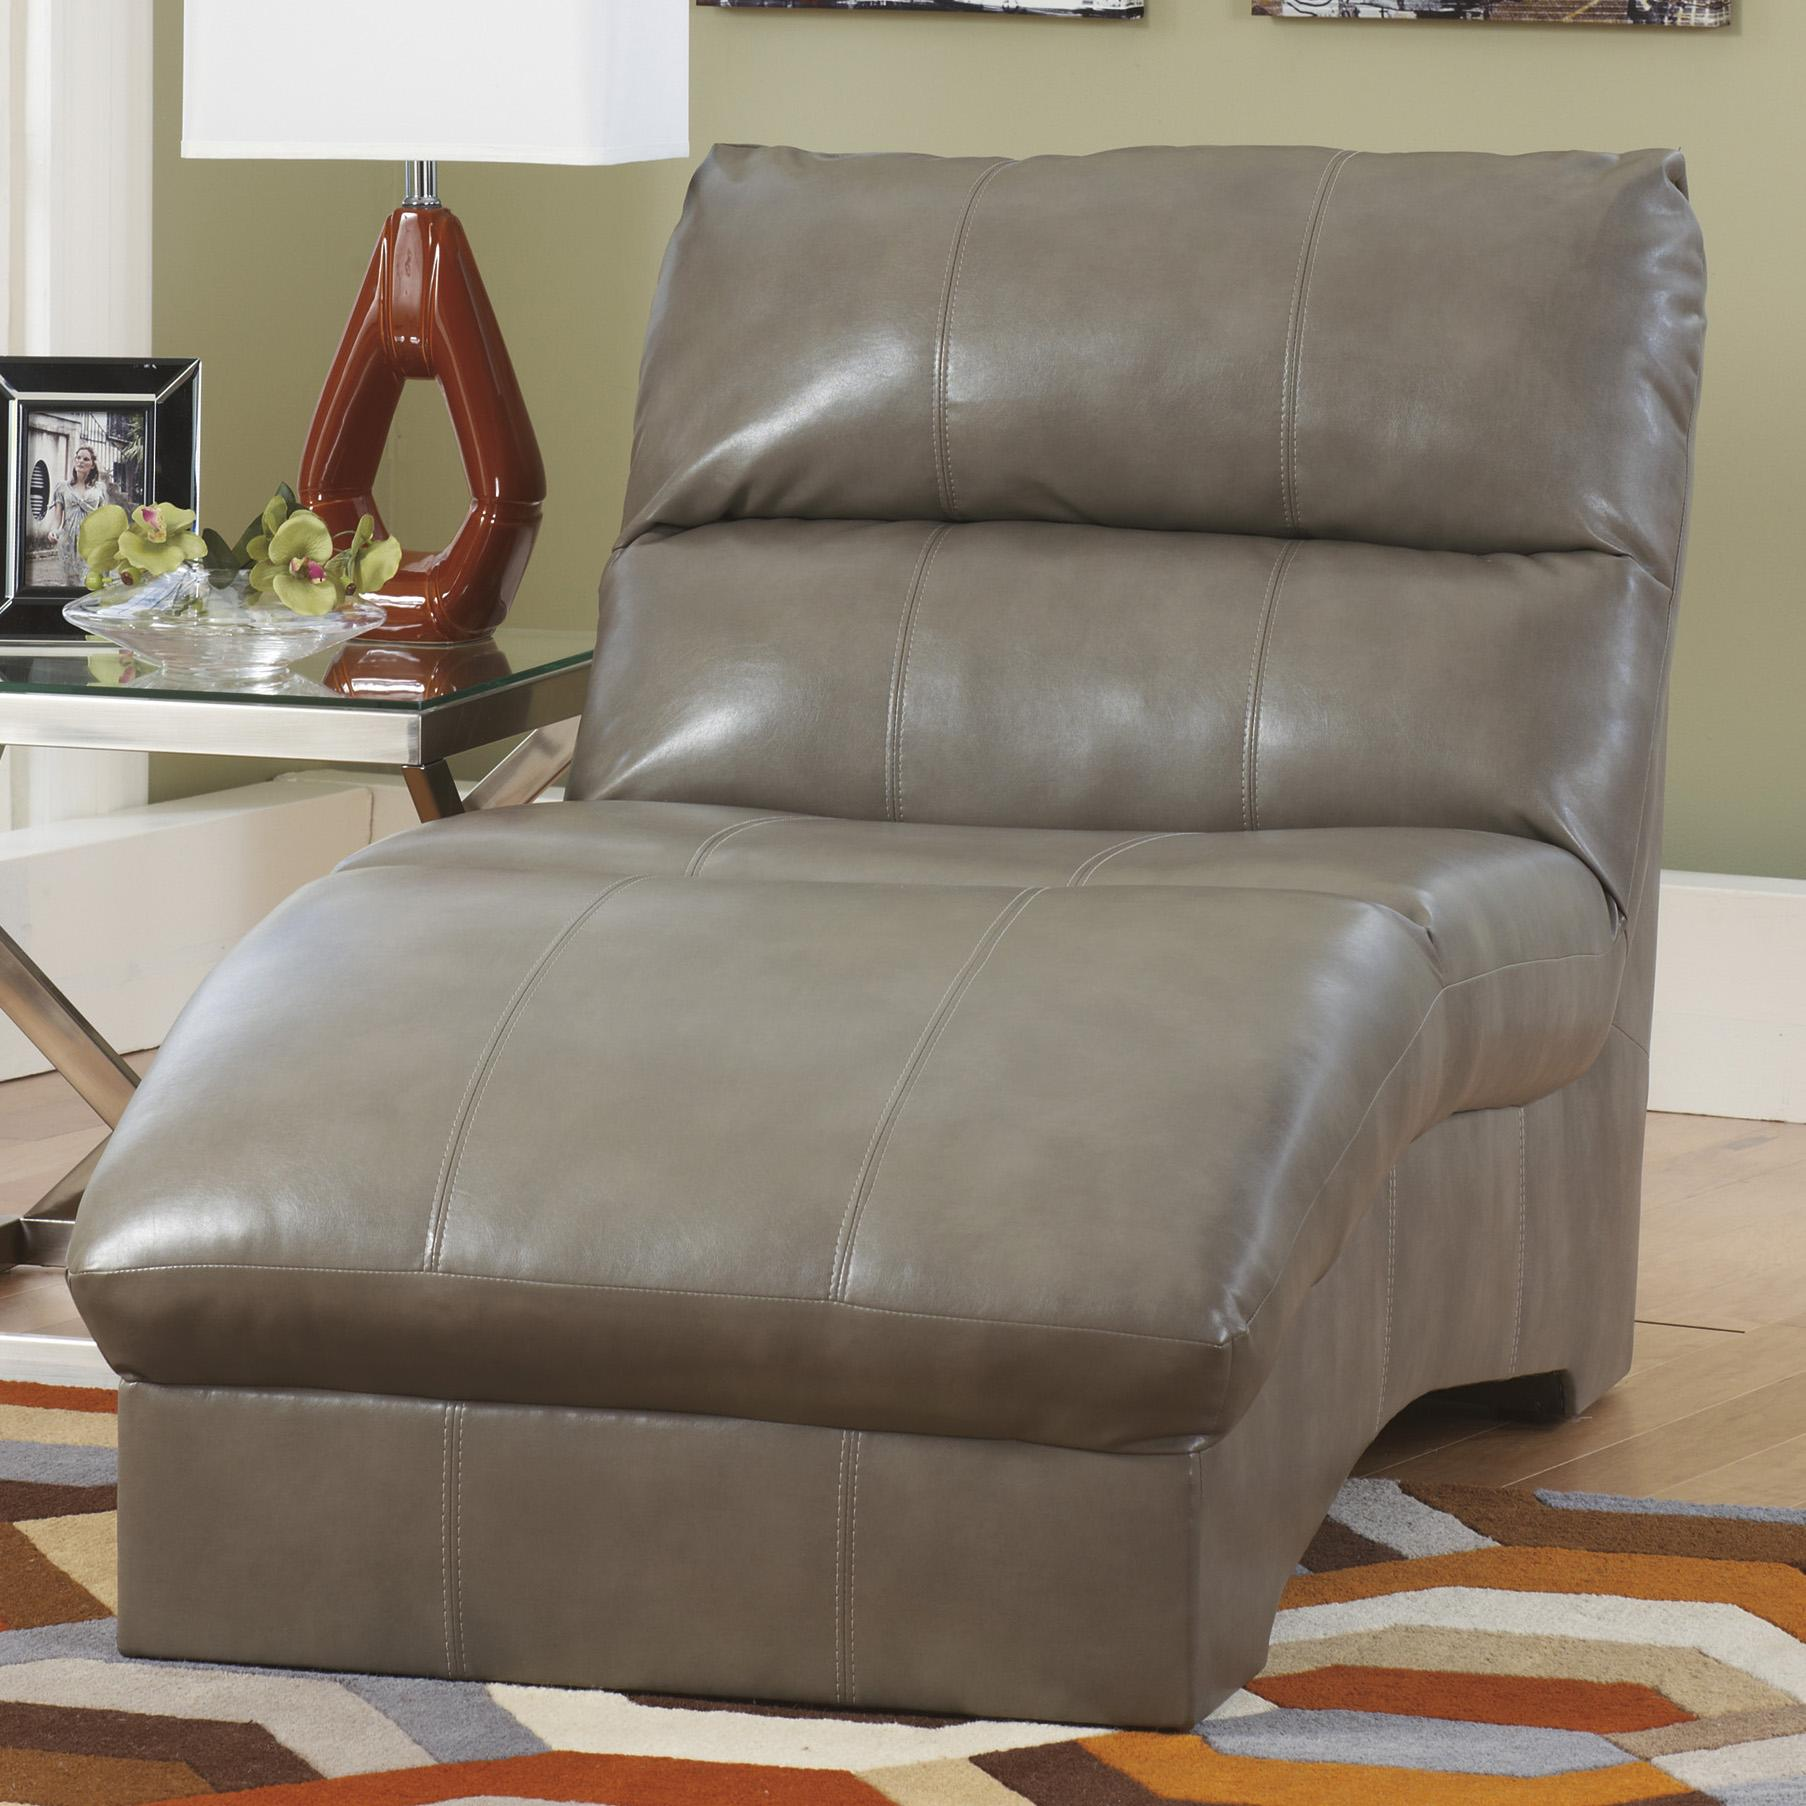 Benchcraft Paulie DuraBlend® - Quarry Chaise - Item Number: 2700115